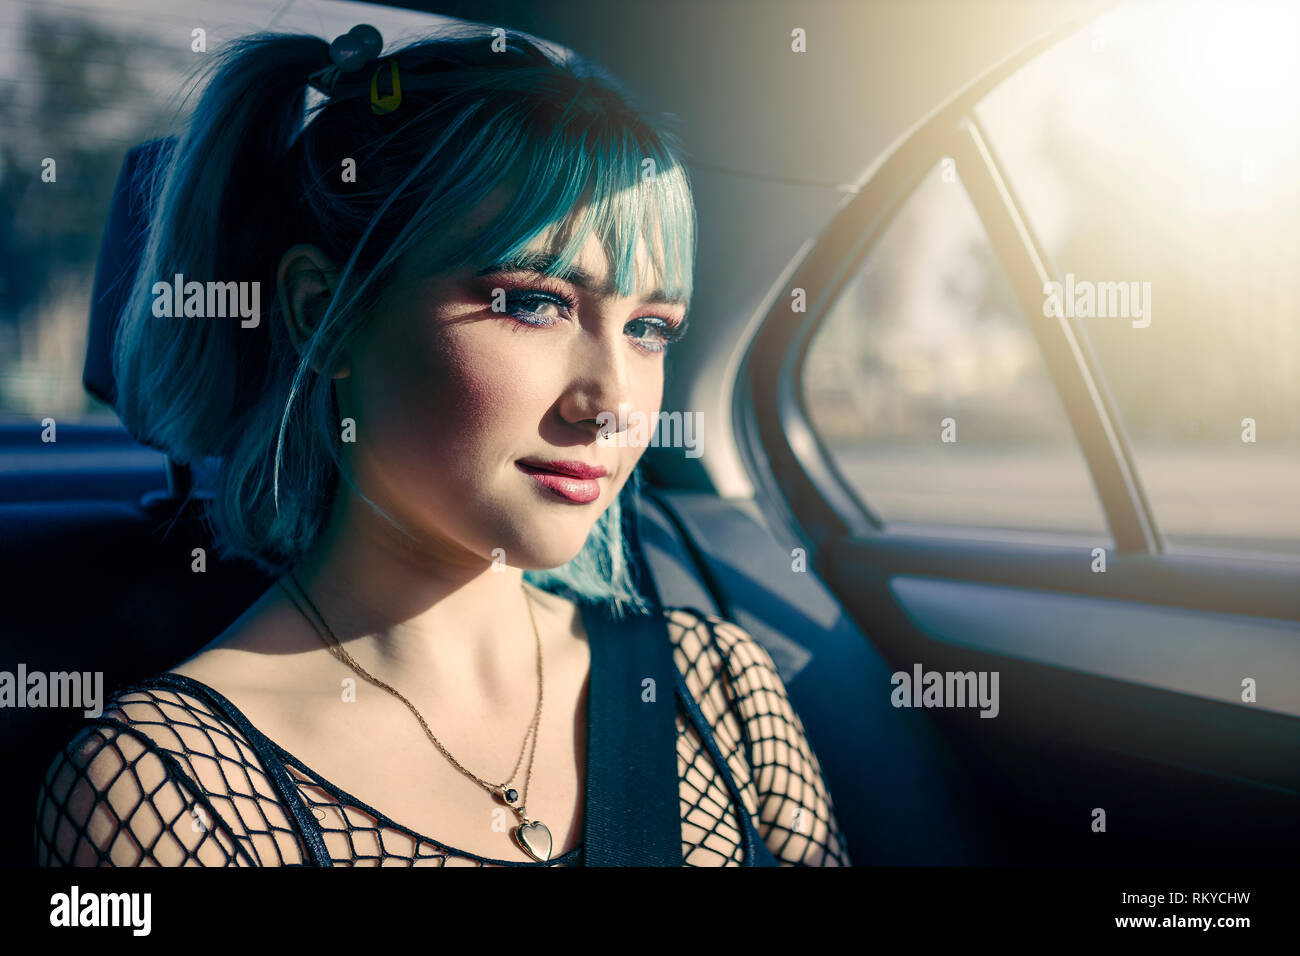 Portrait of teen girl with blue hair and pierced nose in the backseat of a car while on a roadtrip. Stock Photo